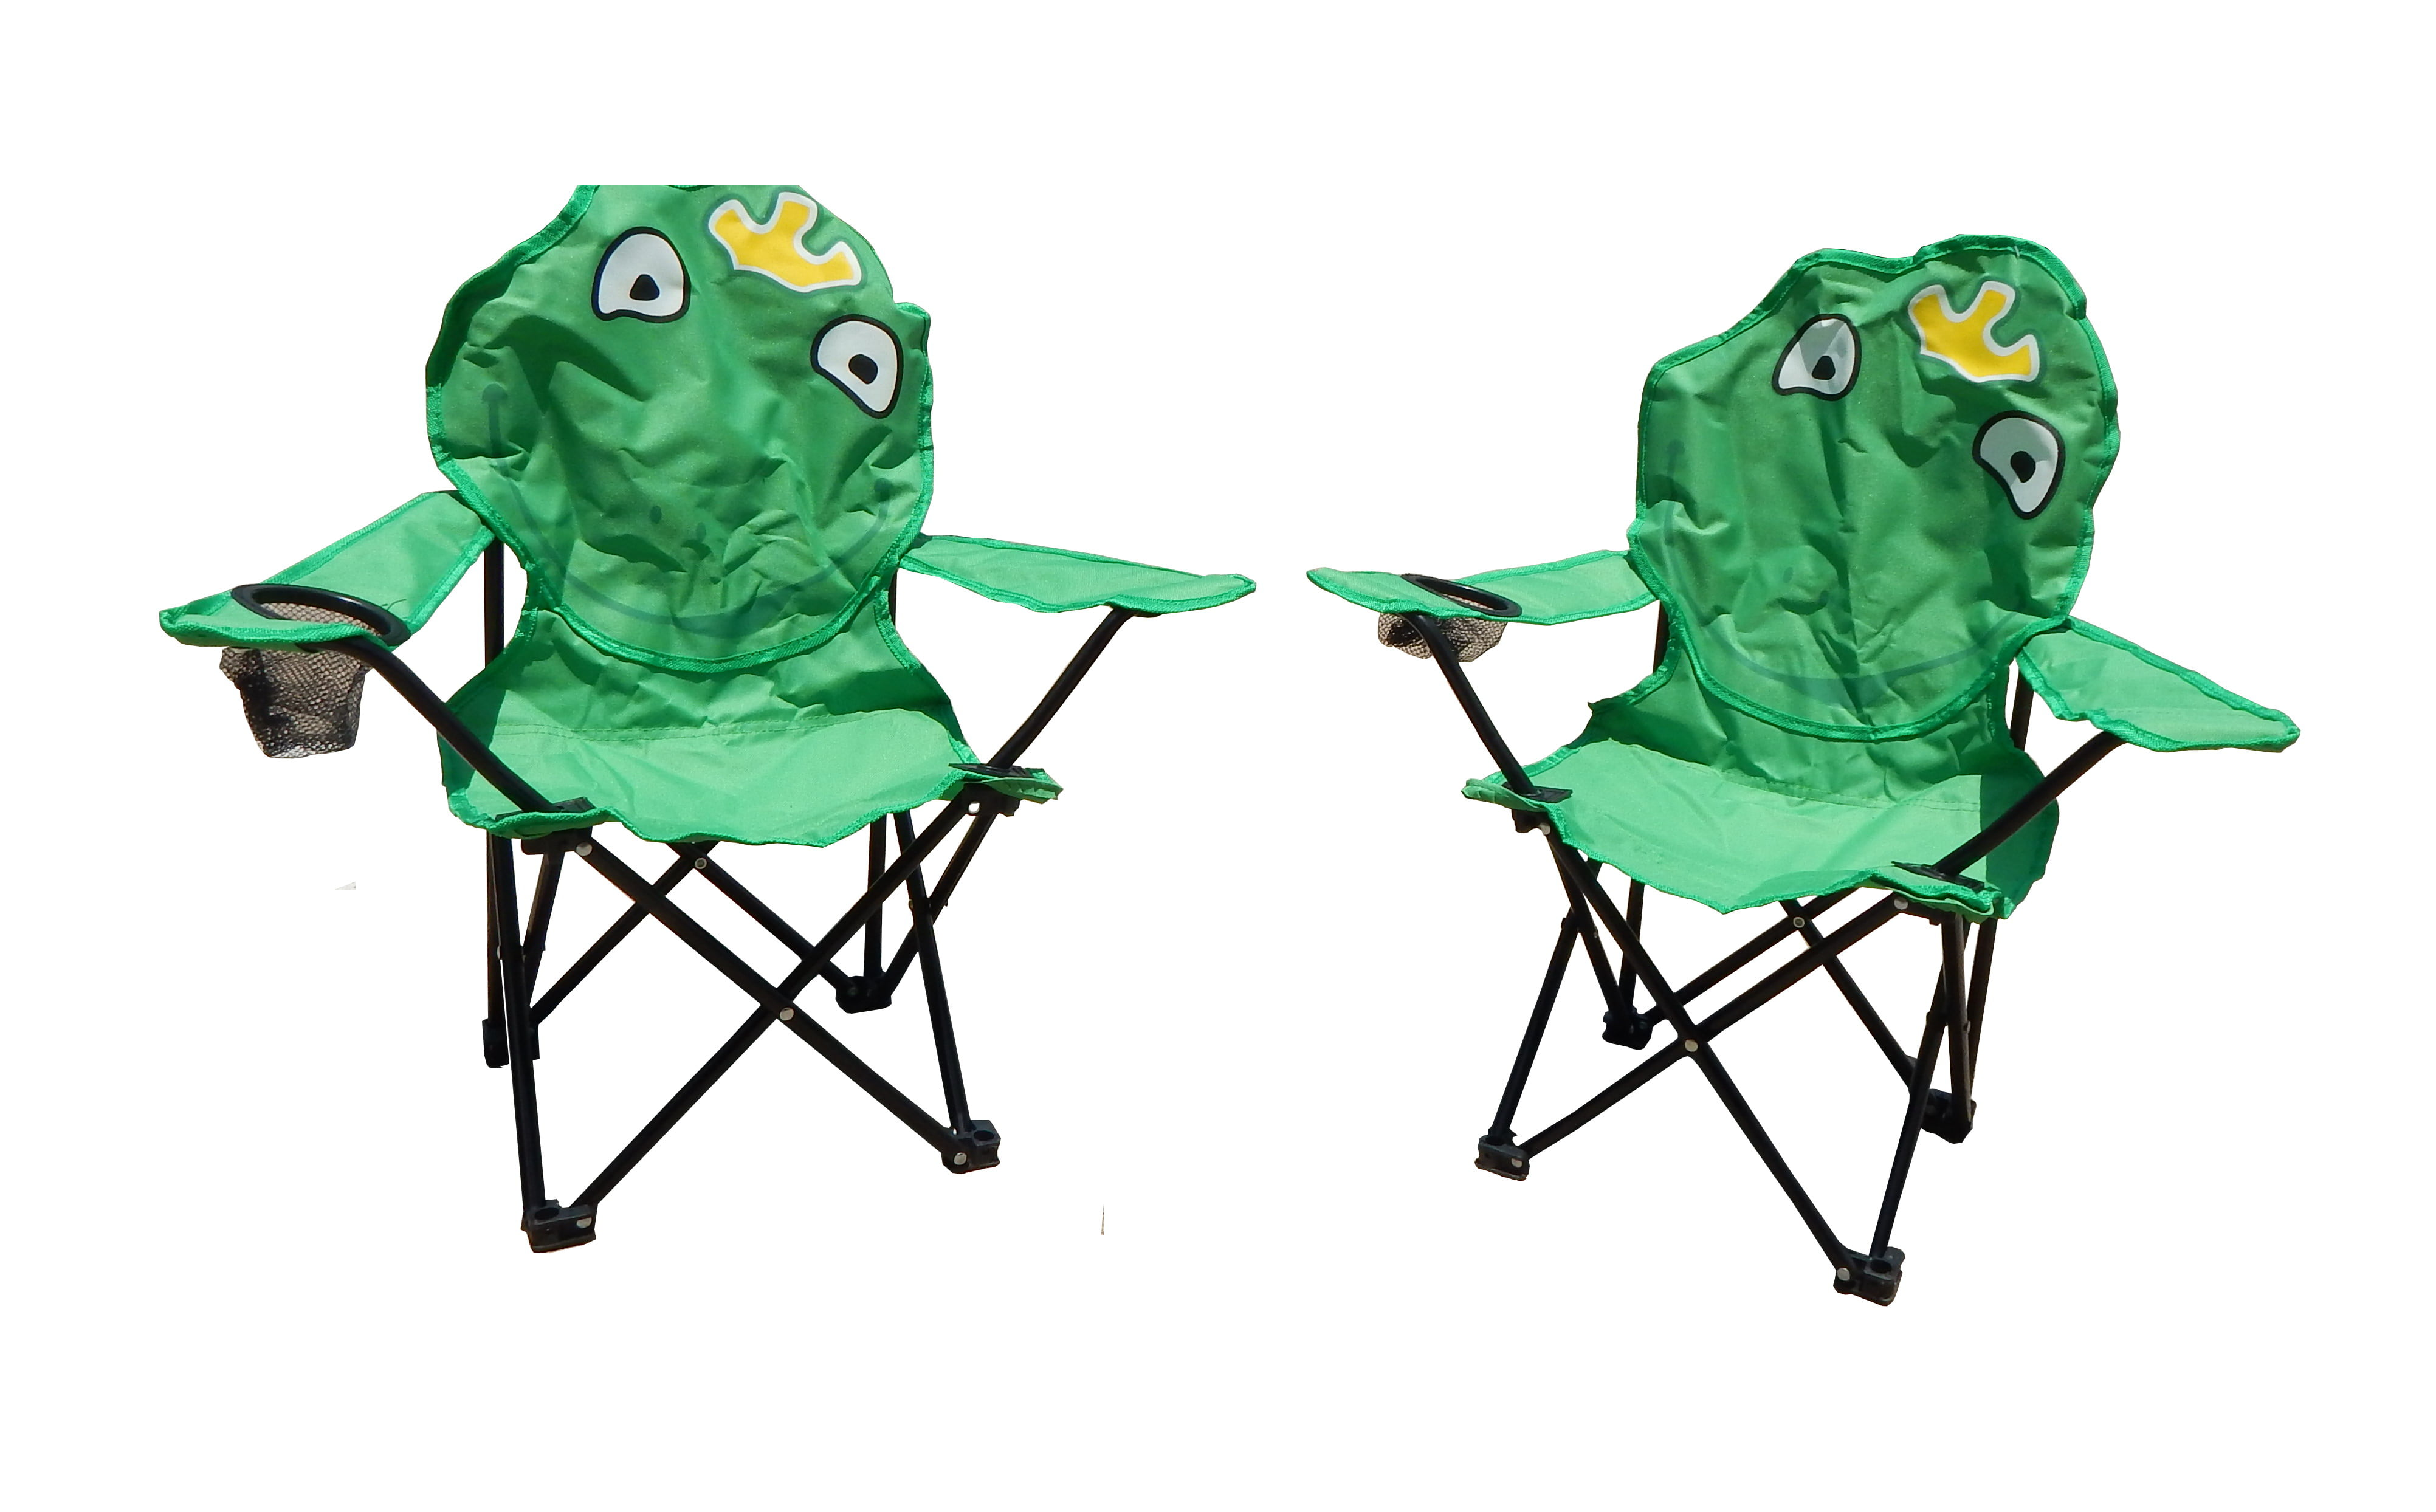 MAOS Brown Monkey Folding Kids Camping Chairs (Set of 2) - Walmart.com